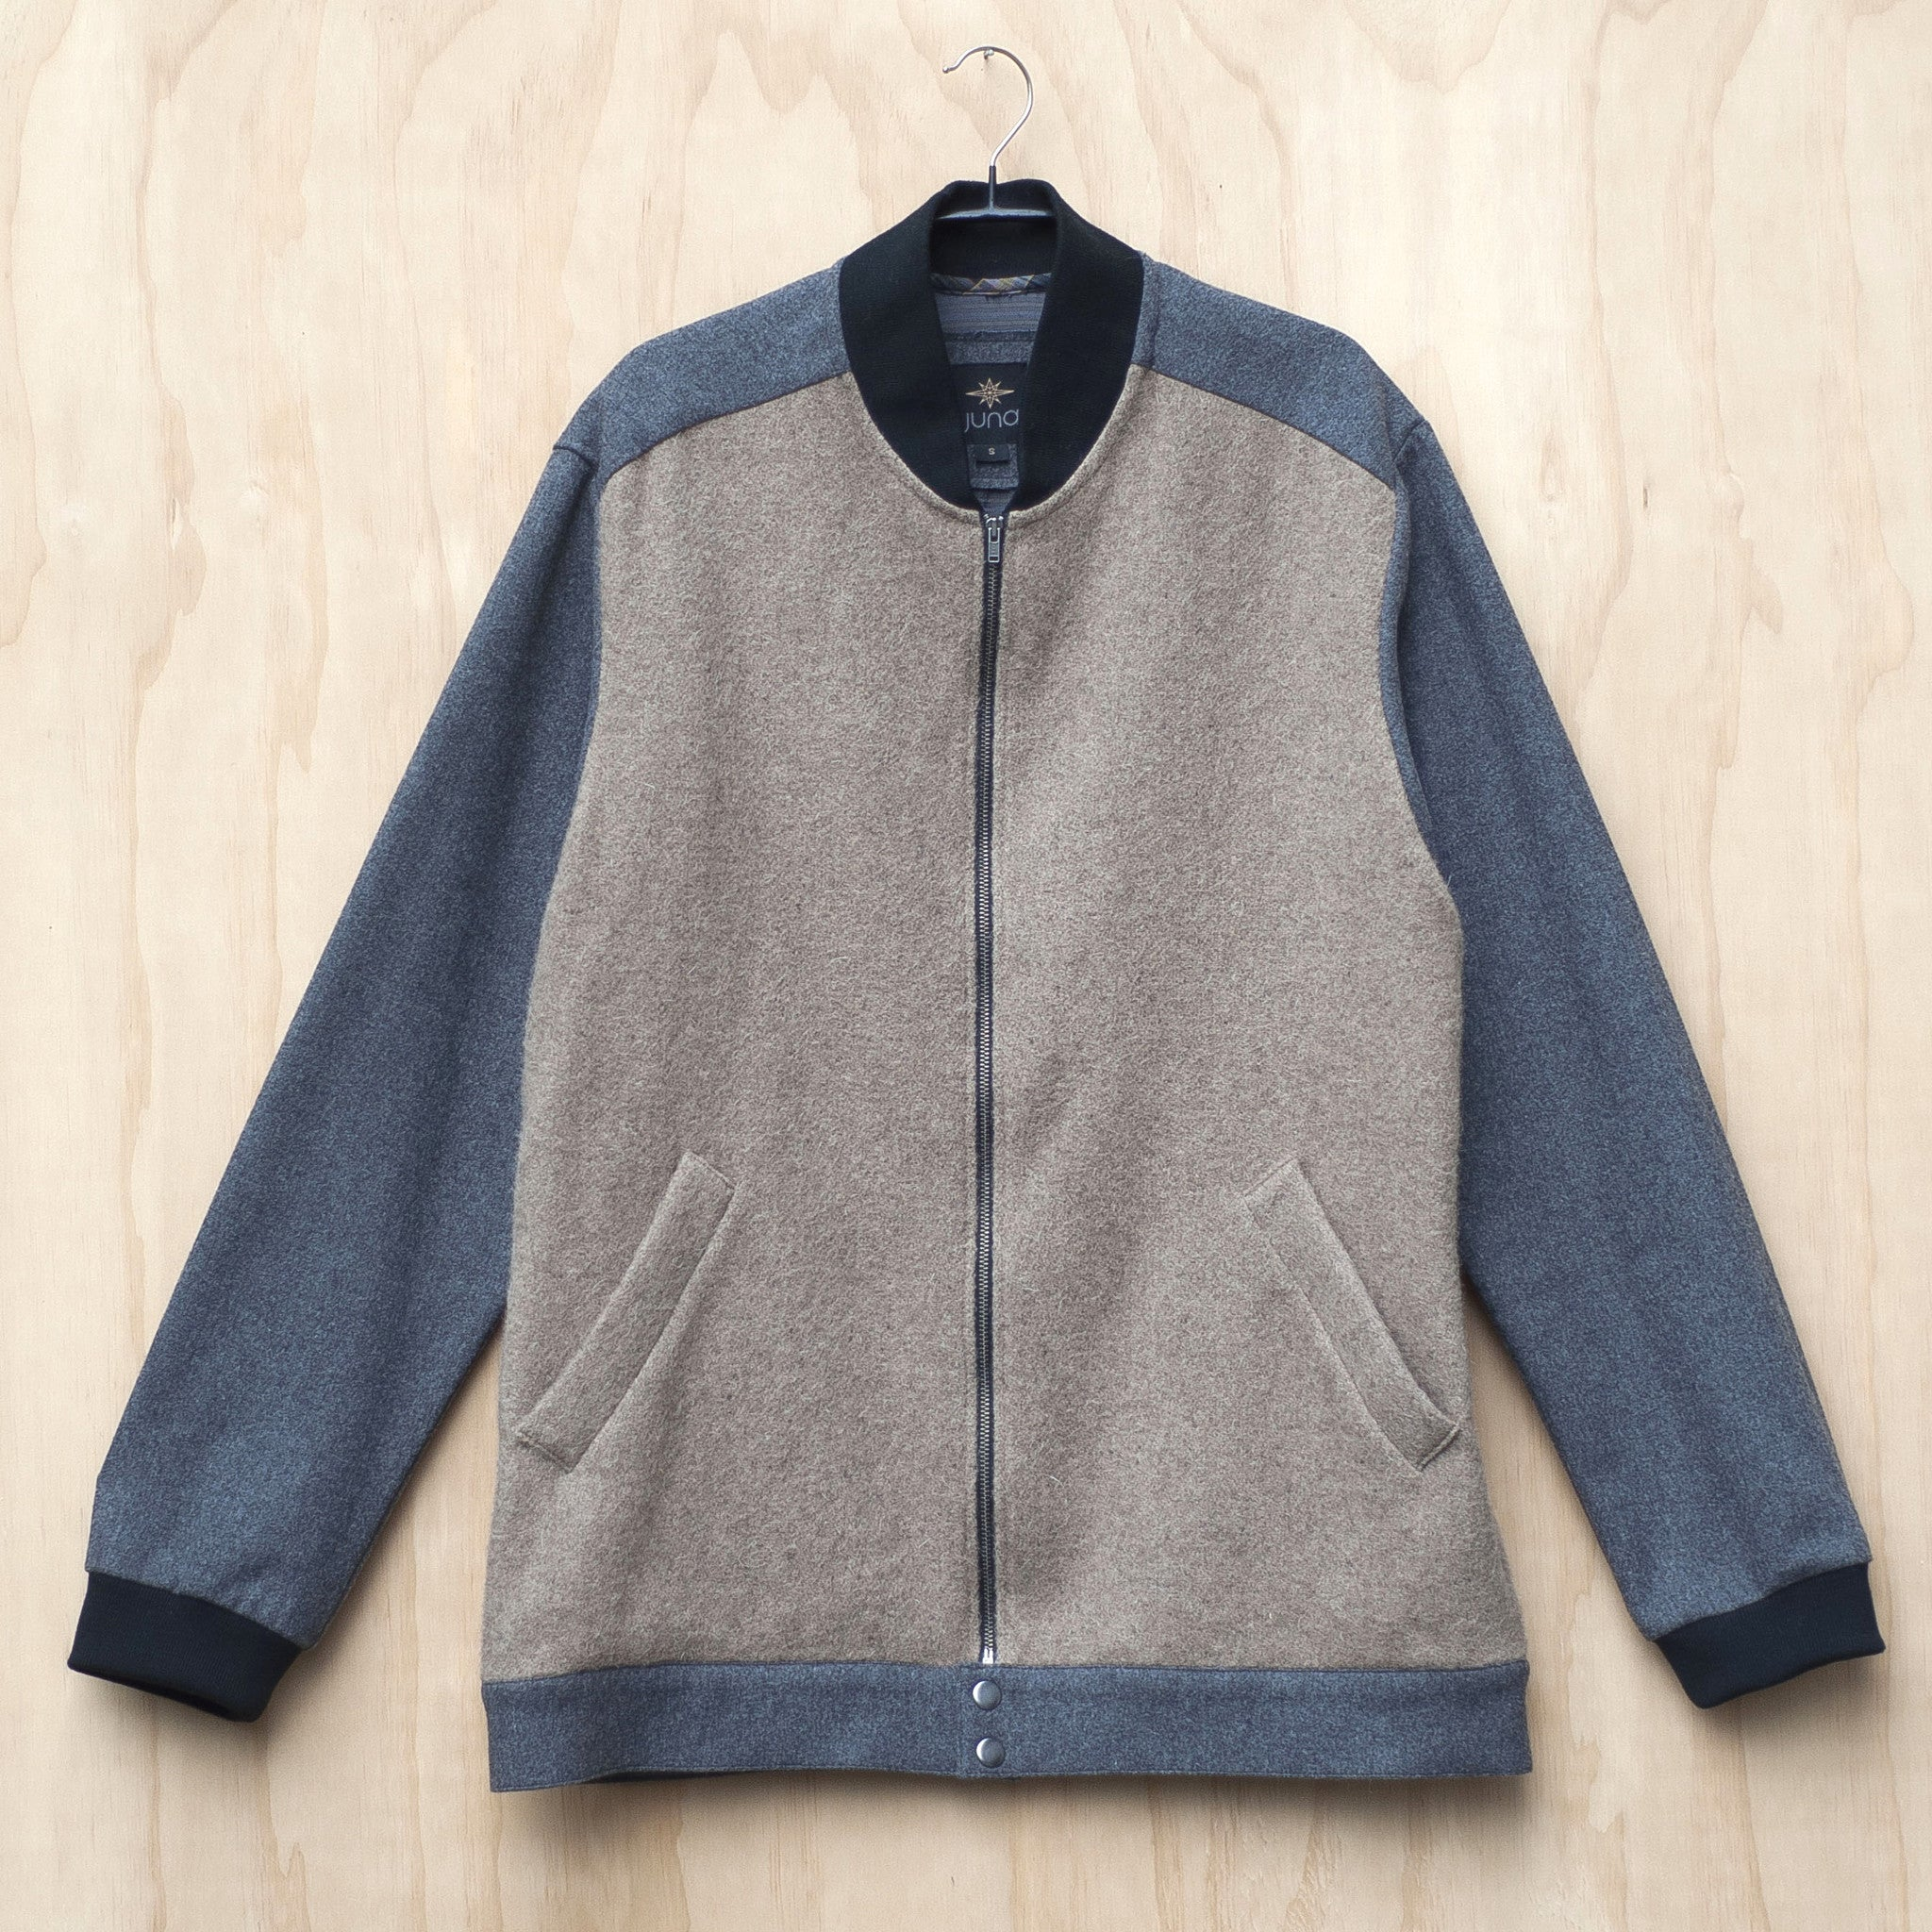 Juna Menswear Sussex Jacket